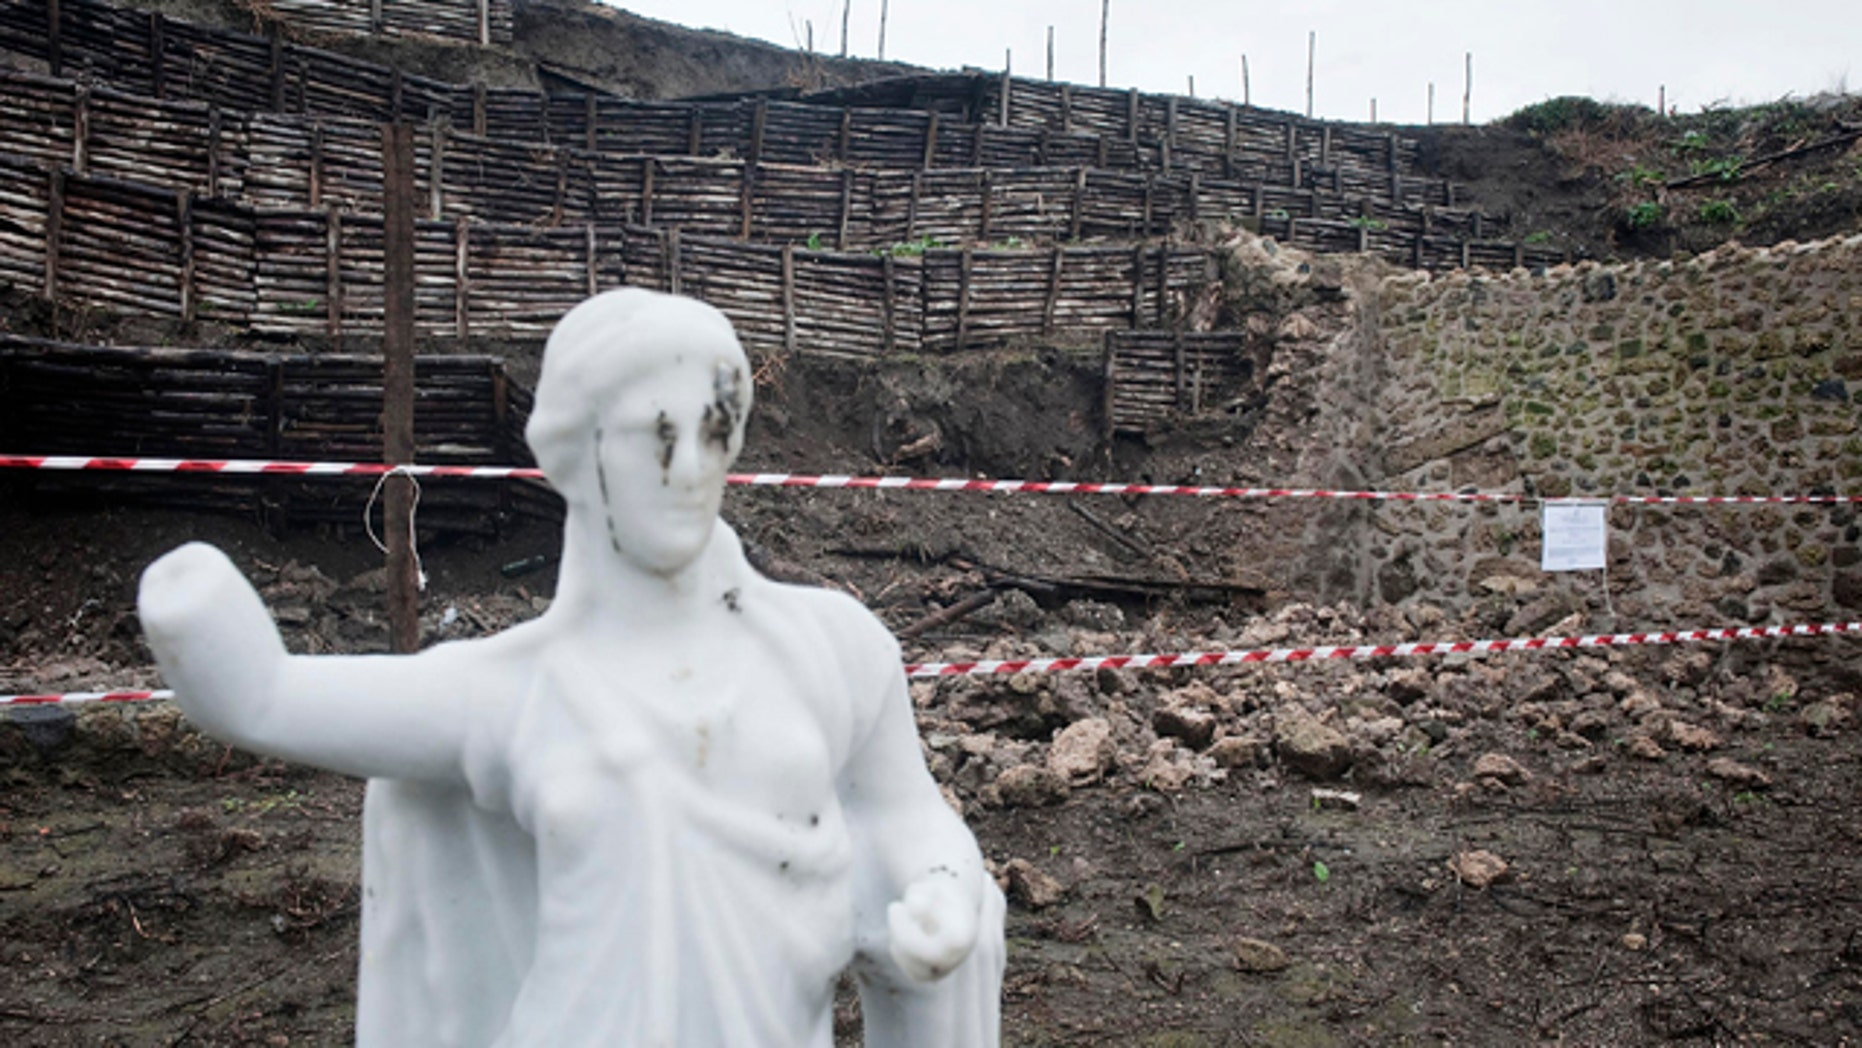 Nov. 30, 2010: A stretch of garden wall ringing an ancient house in Pompeii that gave way after days of torrential rain is cordoned-off. Officials said an inspection found that a 40-foot-long section of wall forming part of the perimeter of a garden area near the House of the Moralist gave way in several points.